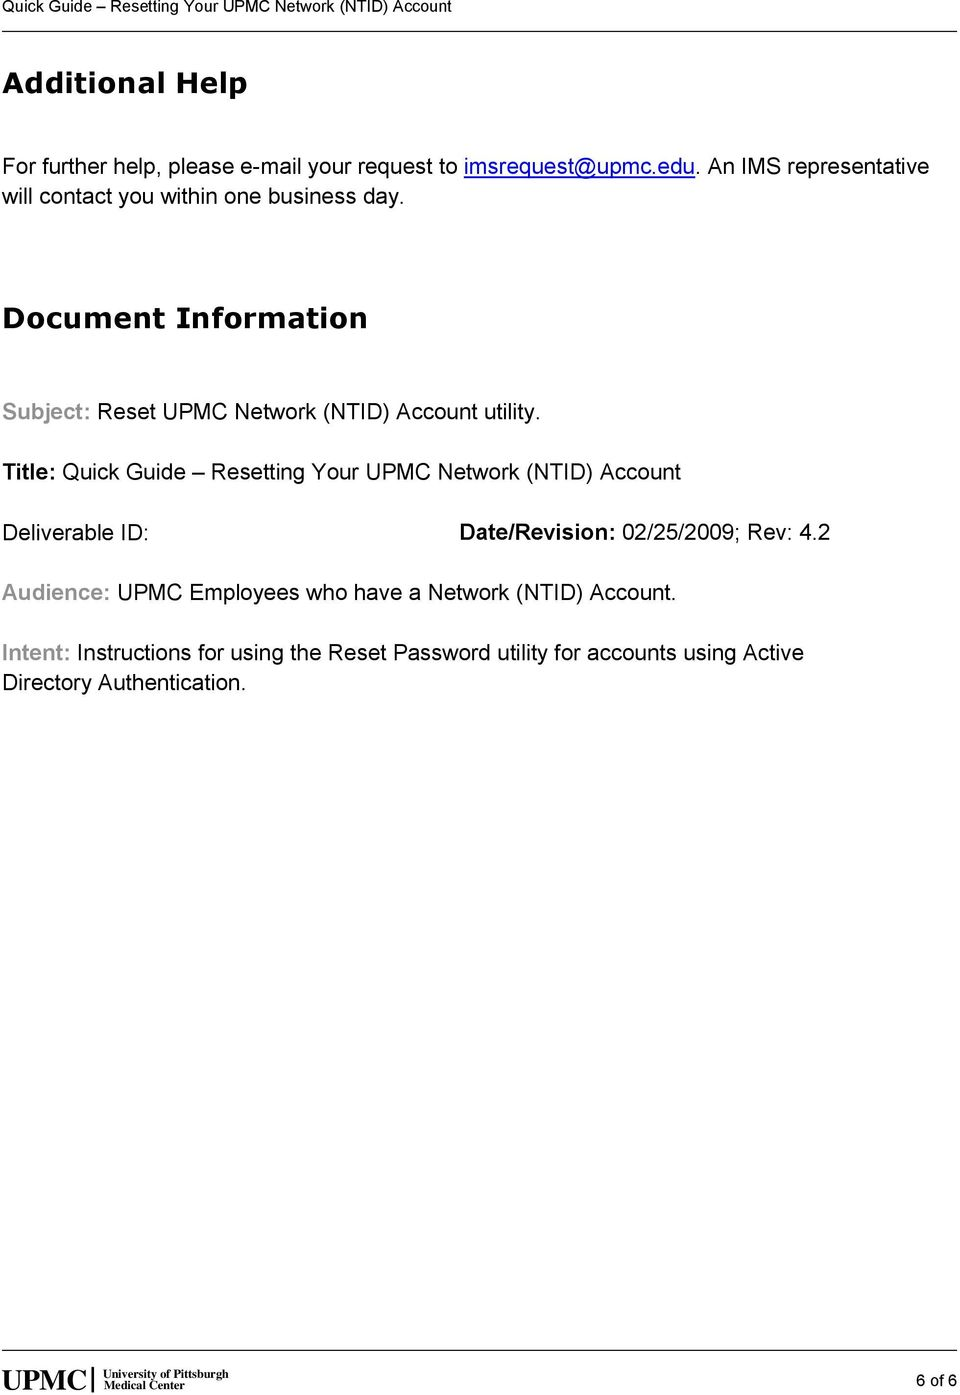 Quick Guide Resetting Your UPMC Network (NTID) Account - PDF